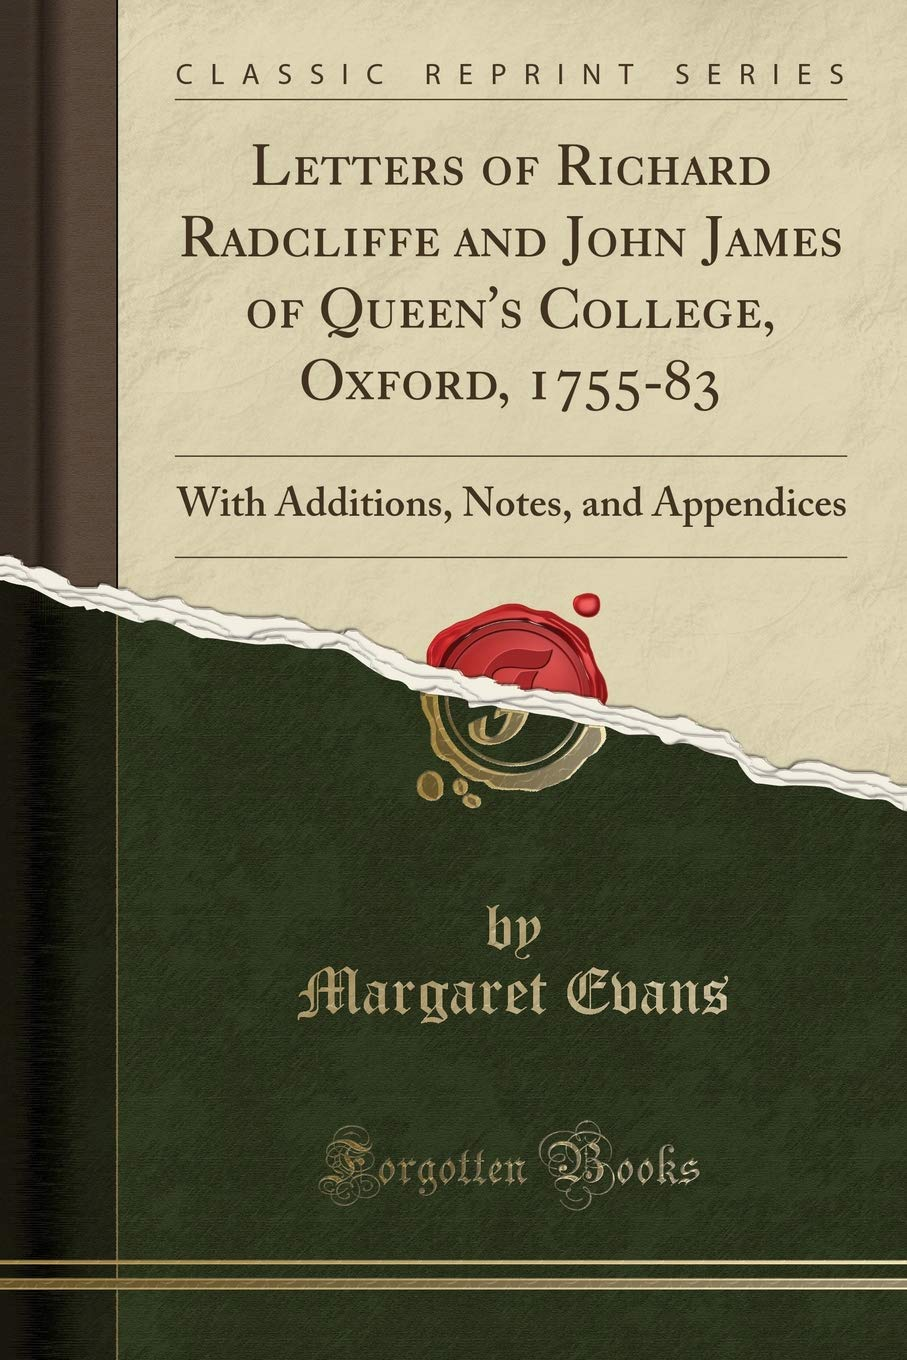 Download Letters of Richard Radcliffe and John James of Queen's College, Oxford, 1755-83: With Additions, Notes, and Appendices (Classic Reprint) pdf epub